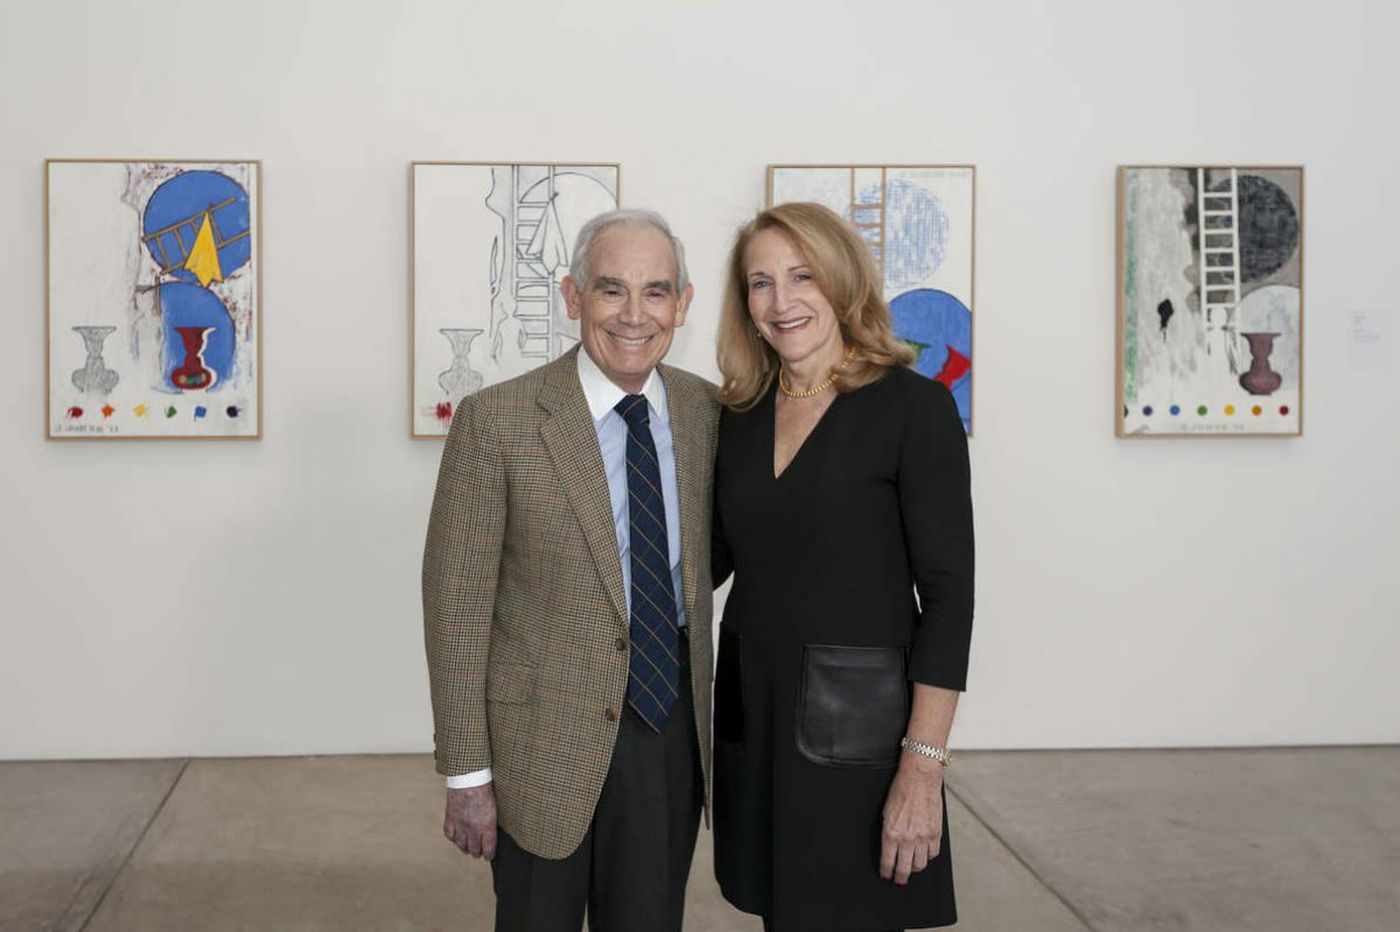 Keith L. Sachs, 72, contemporary art collector and philanthropist